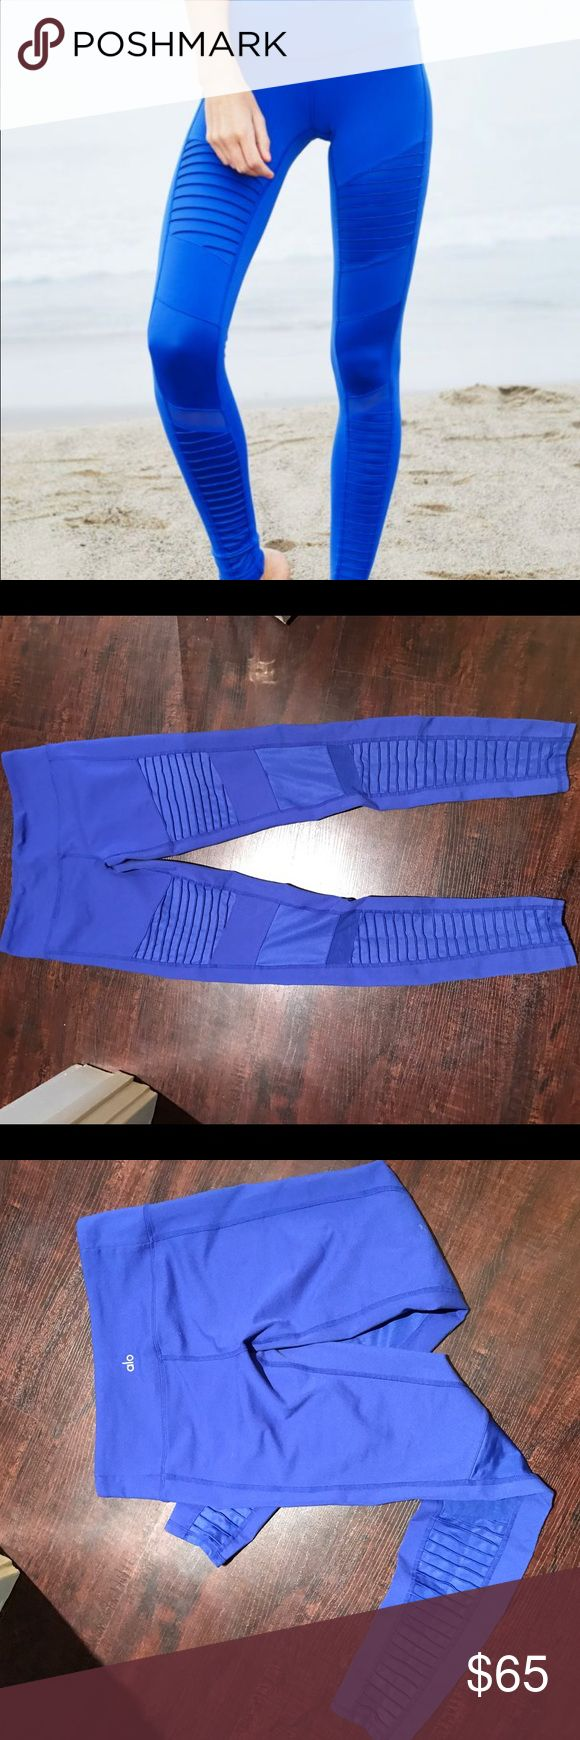 ALO MOTO (electric blue) ALO YOGA🖤medium🖤bright electric blue🖤the infamous MOTO leggings🖤worn under 5x...great condition🖤priced to sell🦋 ALO Yoga Pants Leggings